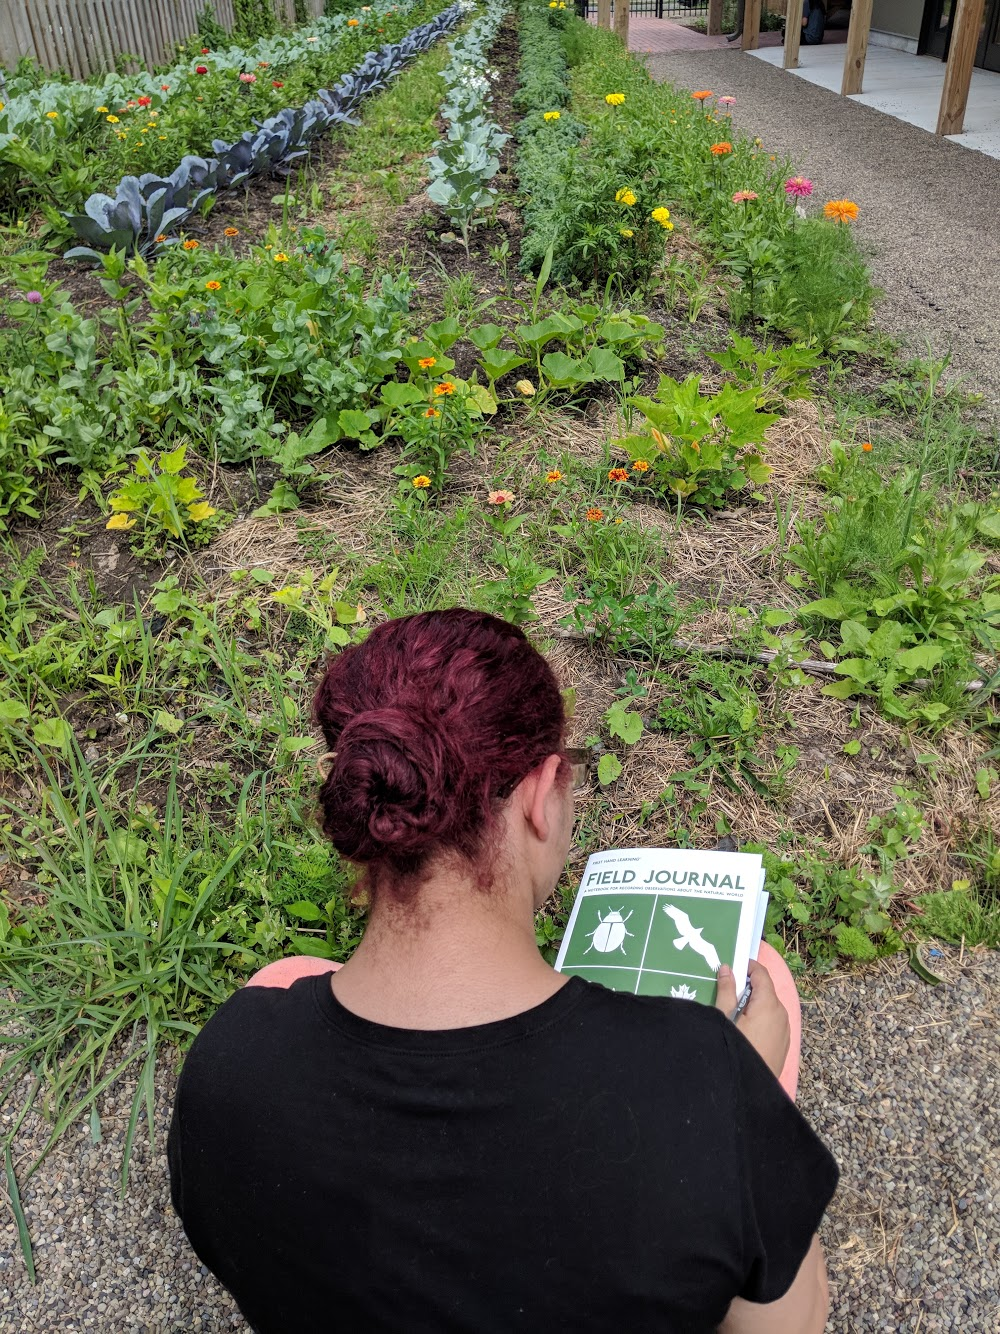 A student utilizing our field journal in a community garden